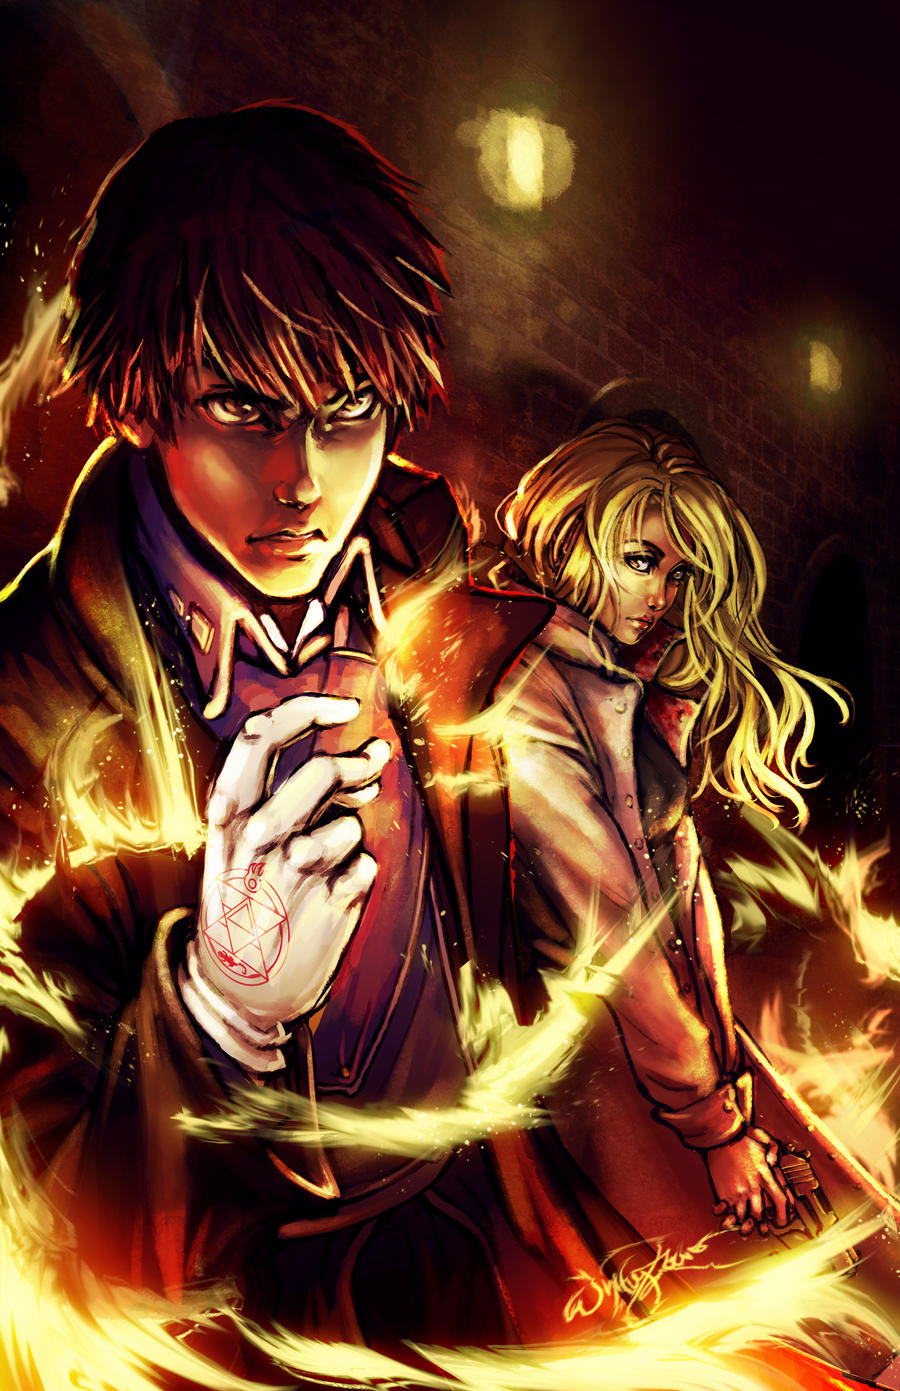 OH SNAP- The Flame Alchemist by DreamerWhit on DeviantArt